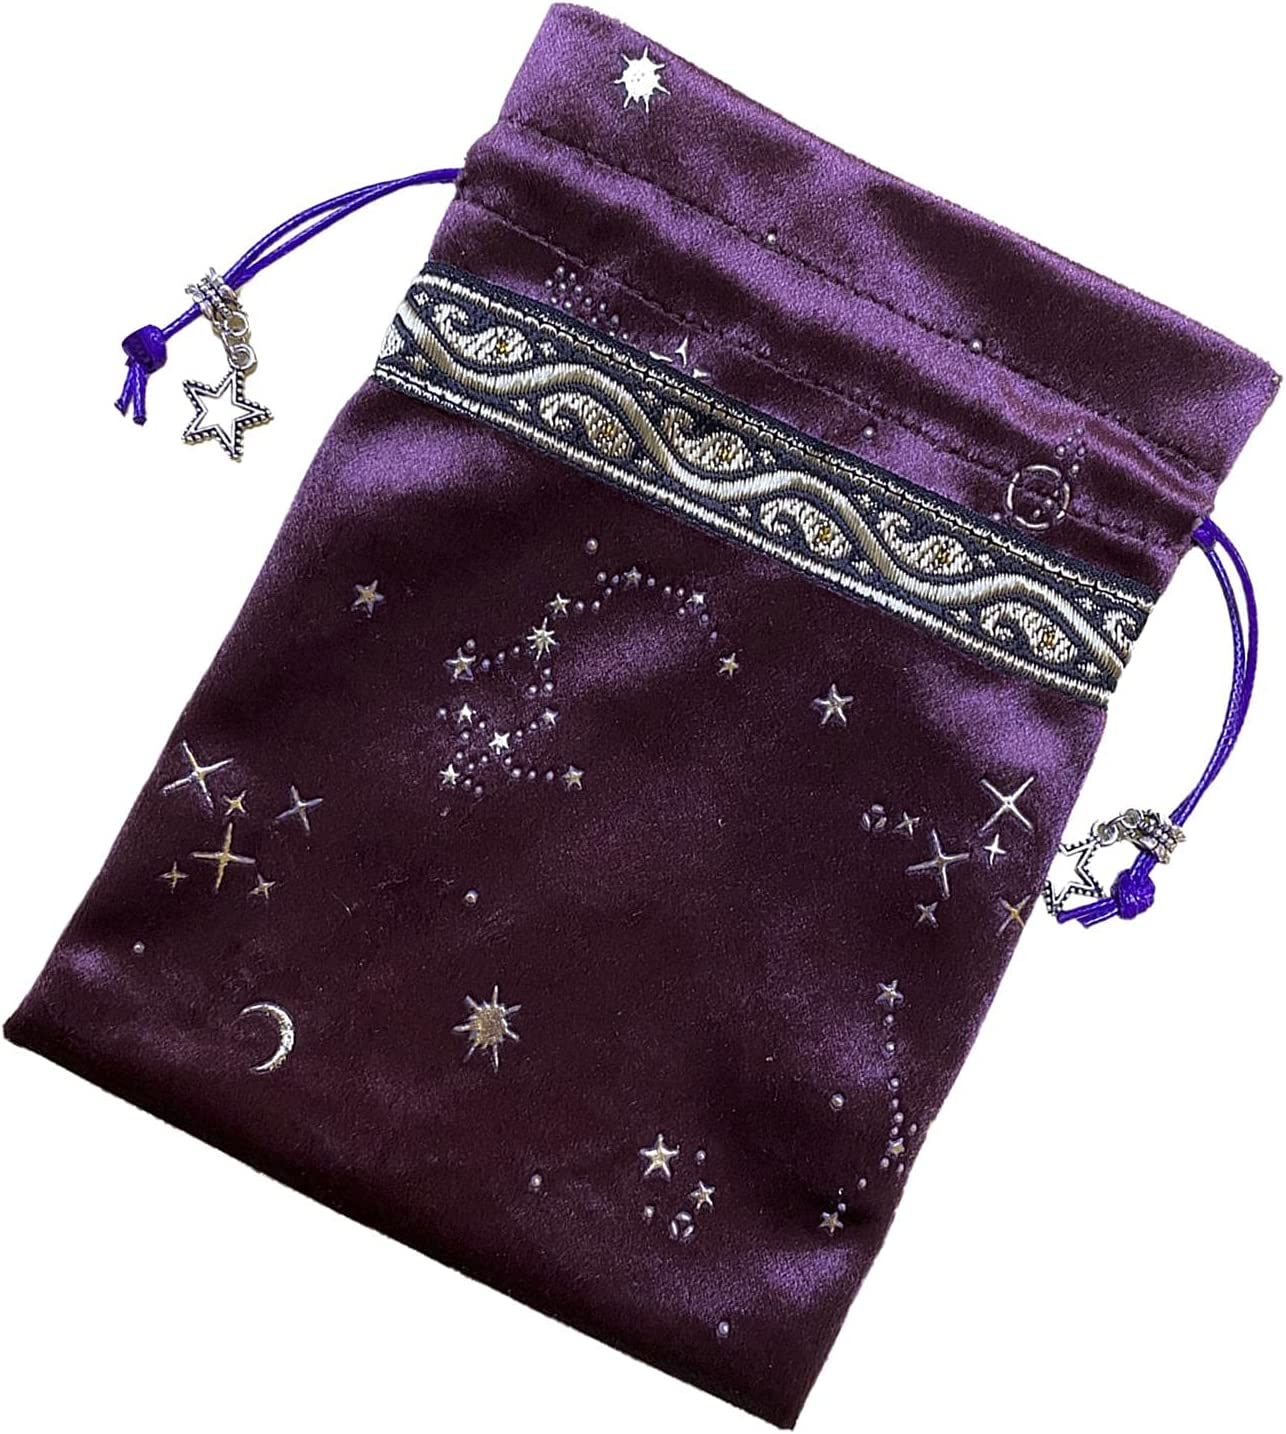 YOOSA Tarot Choice Storage Bag Flannel Magic Pat Outlet ☆ Free Shipping Mysterious Divination